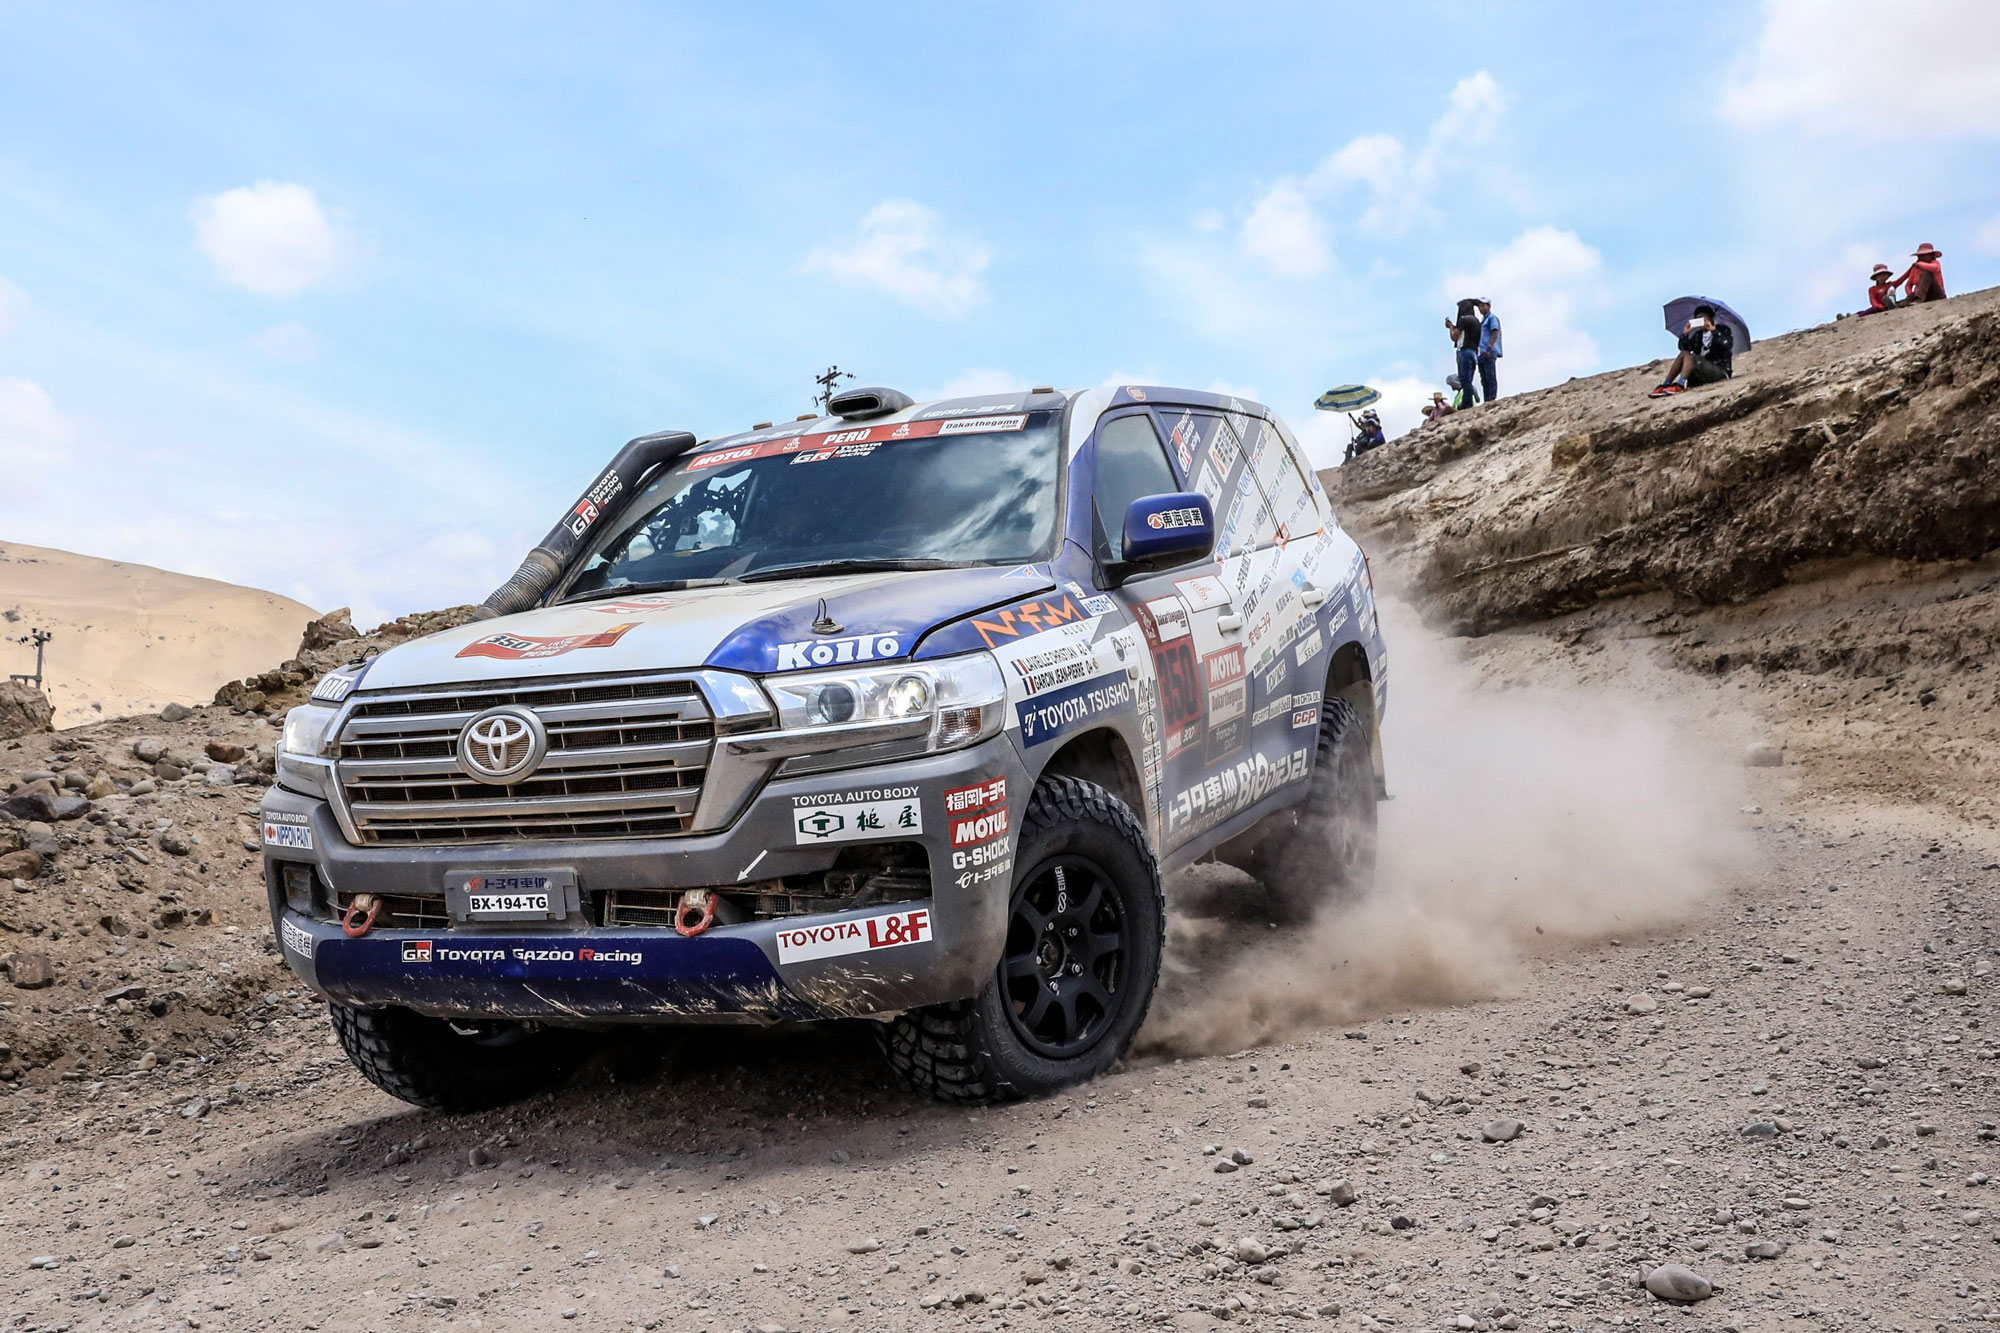 2019 Dakar Rally Toyota Land Cruiser 200 Series